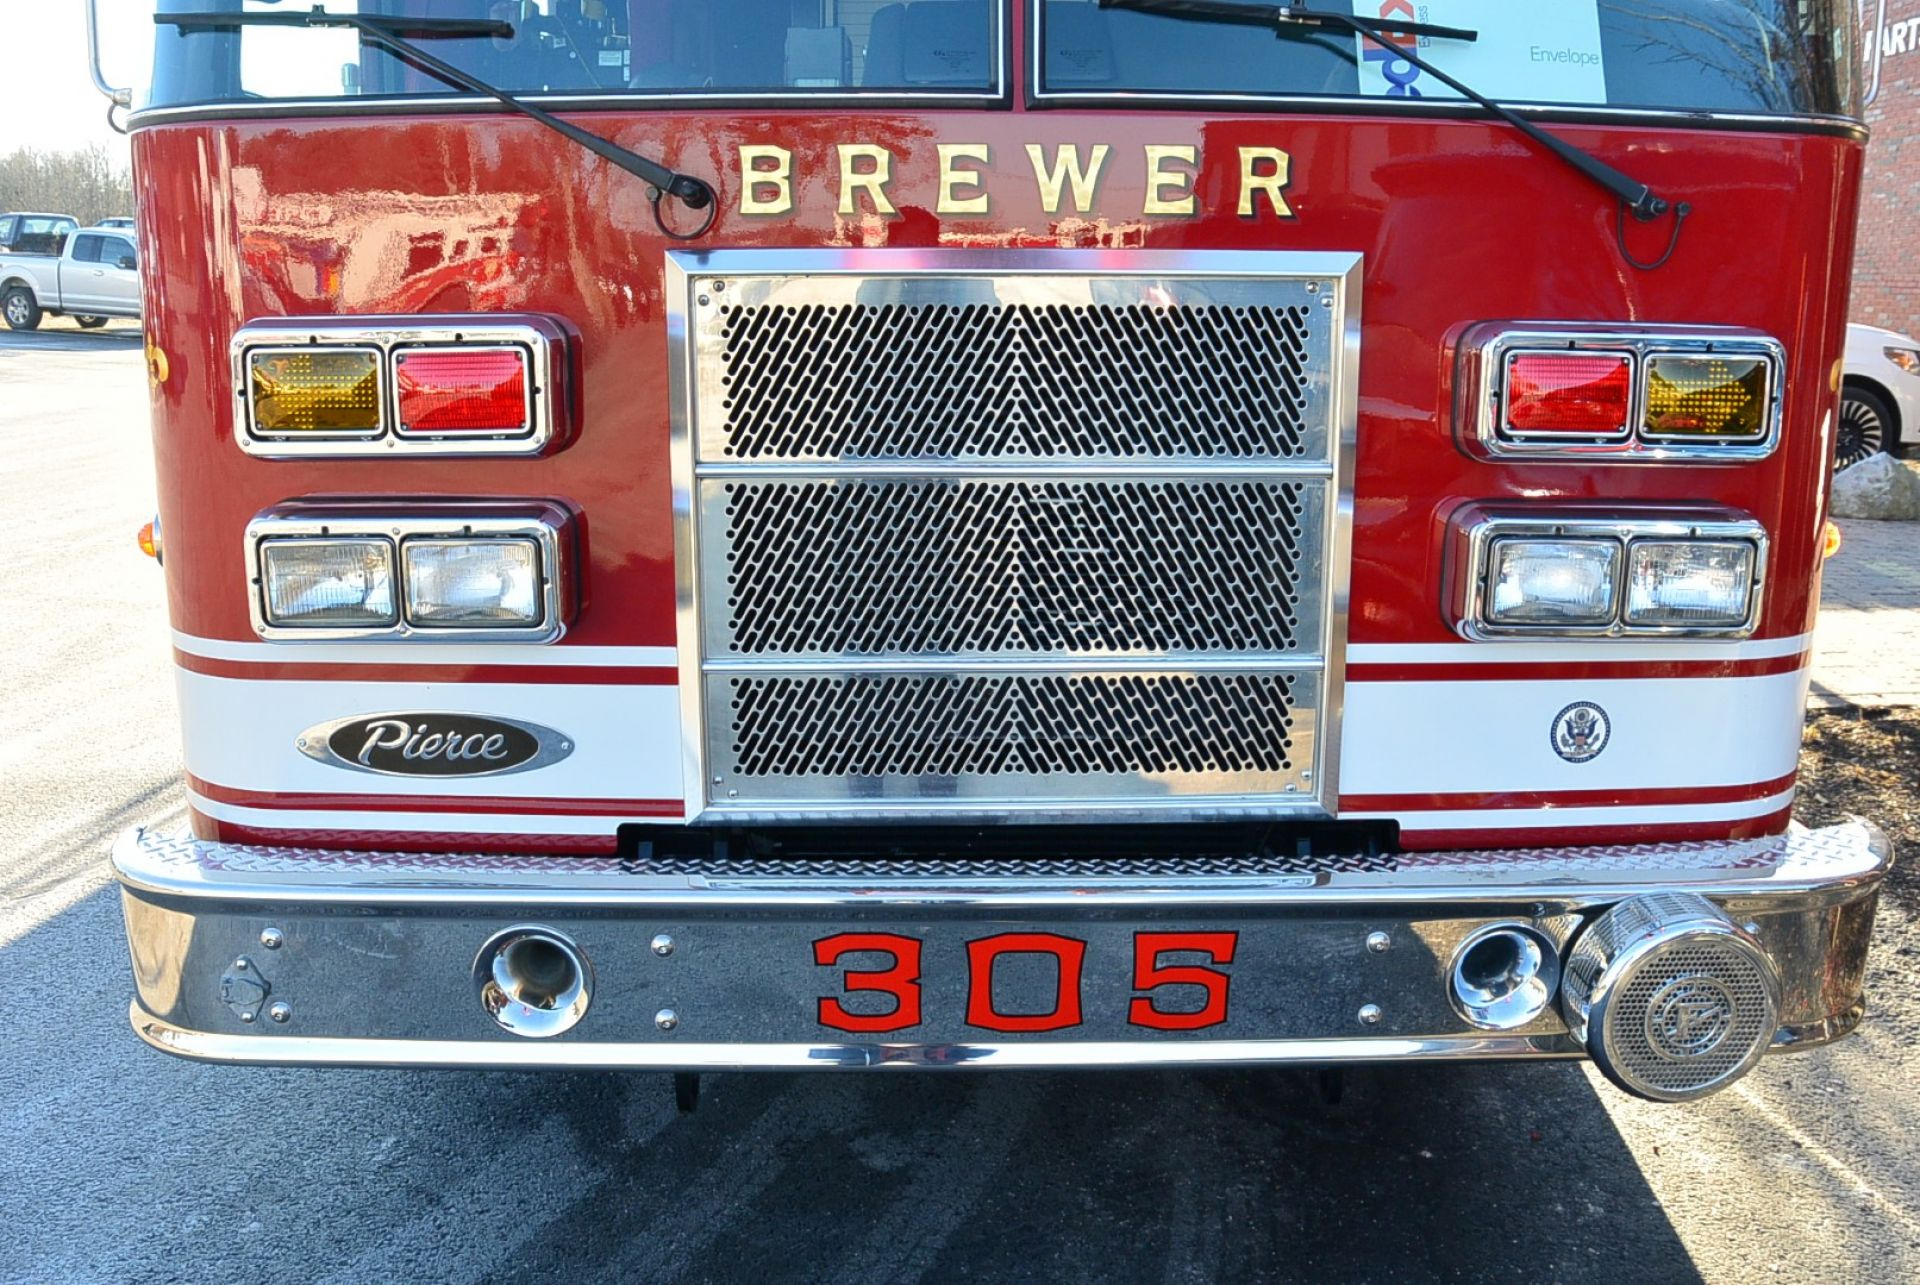 Brewer FD